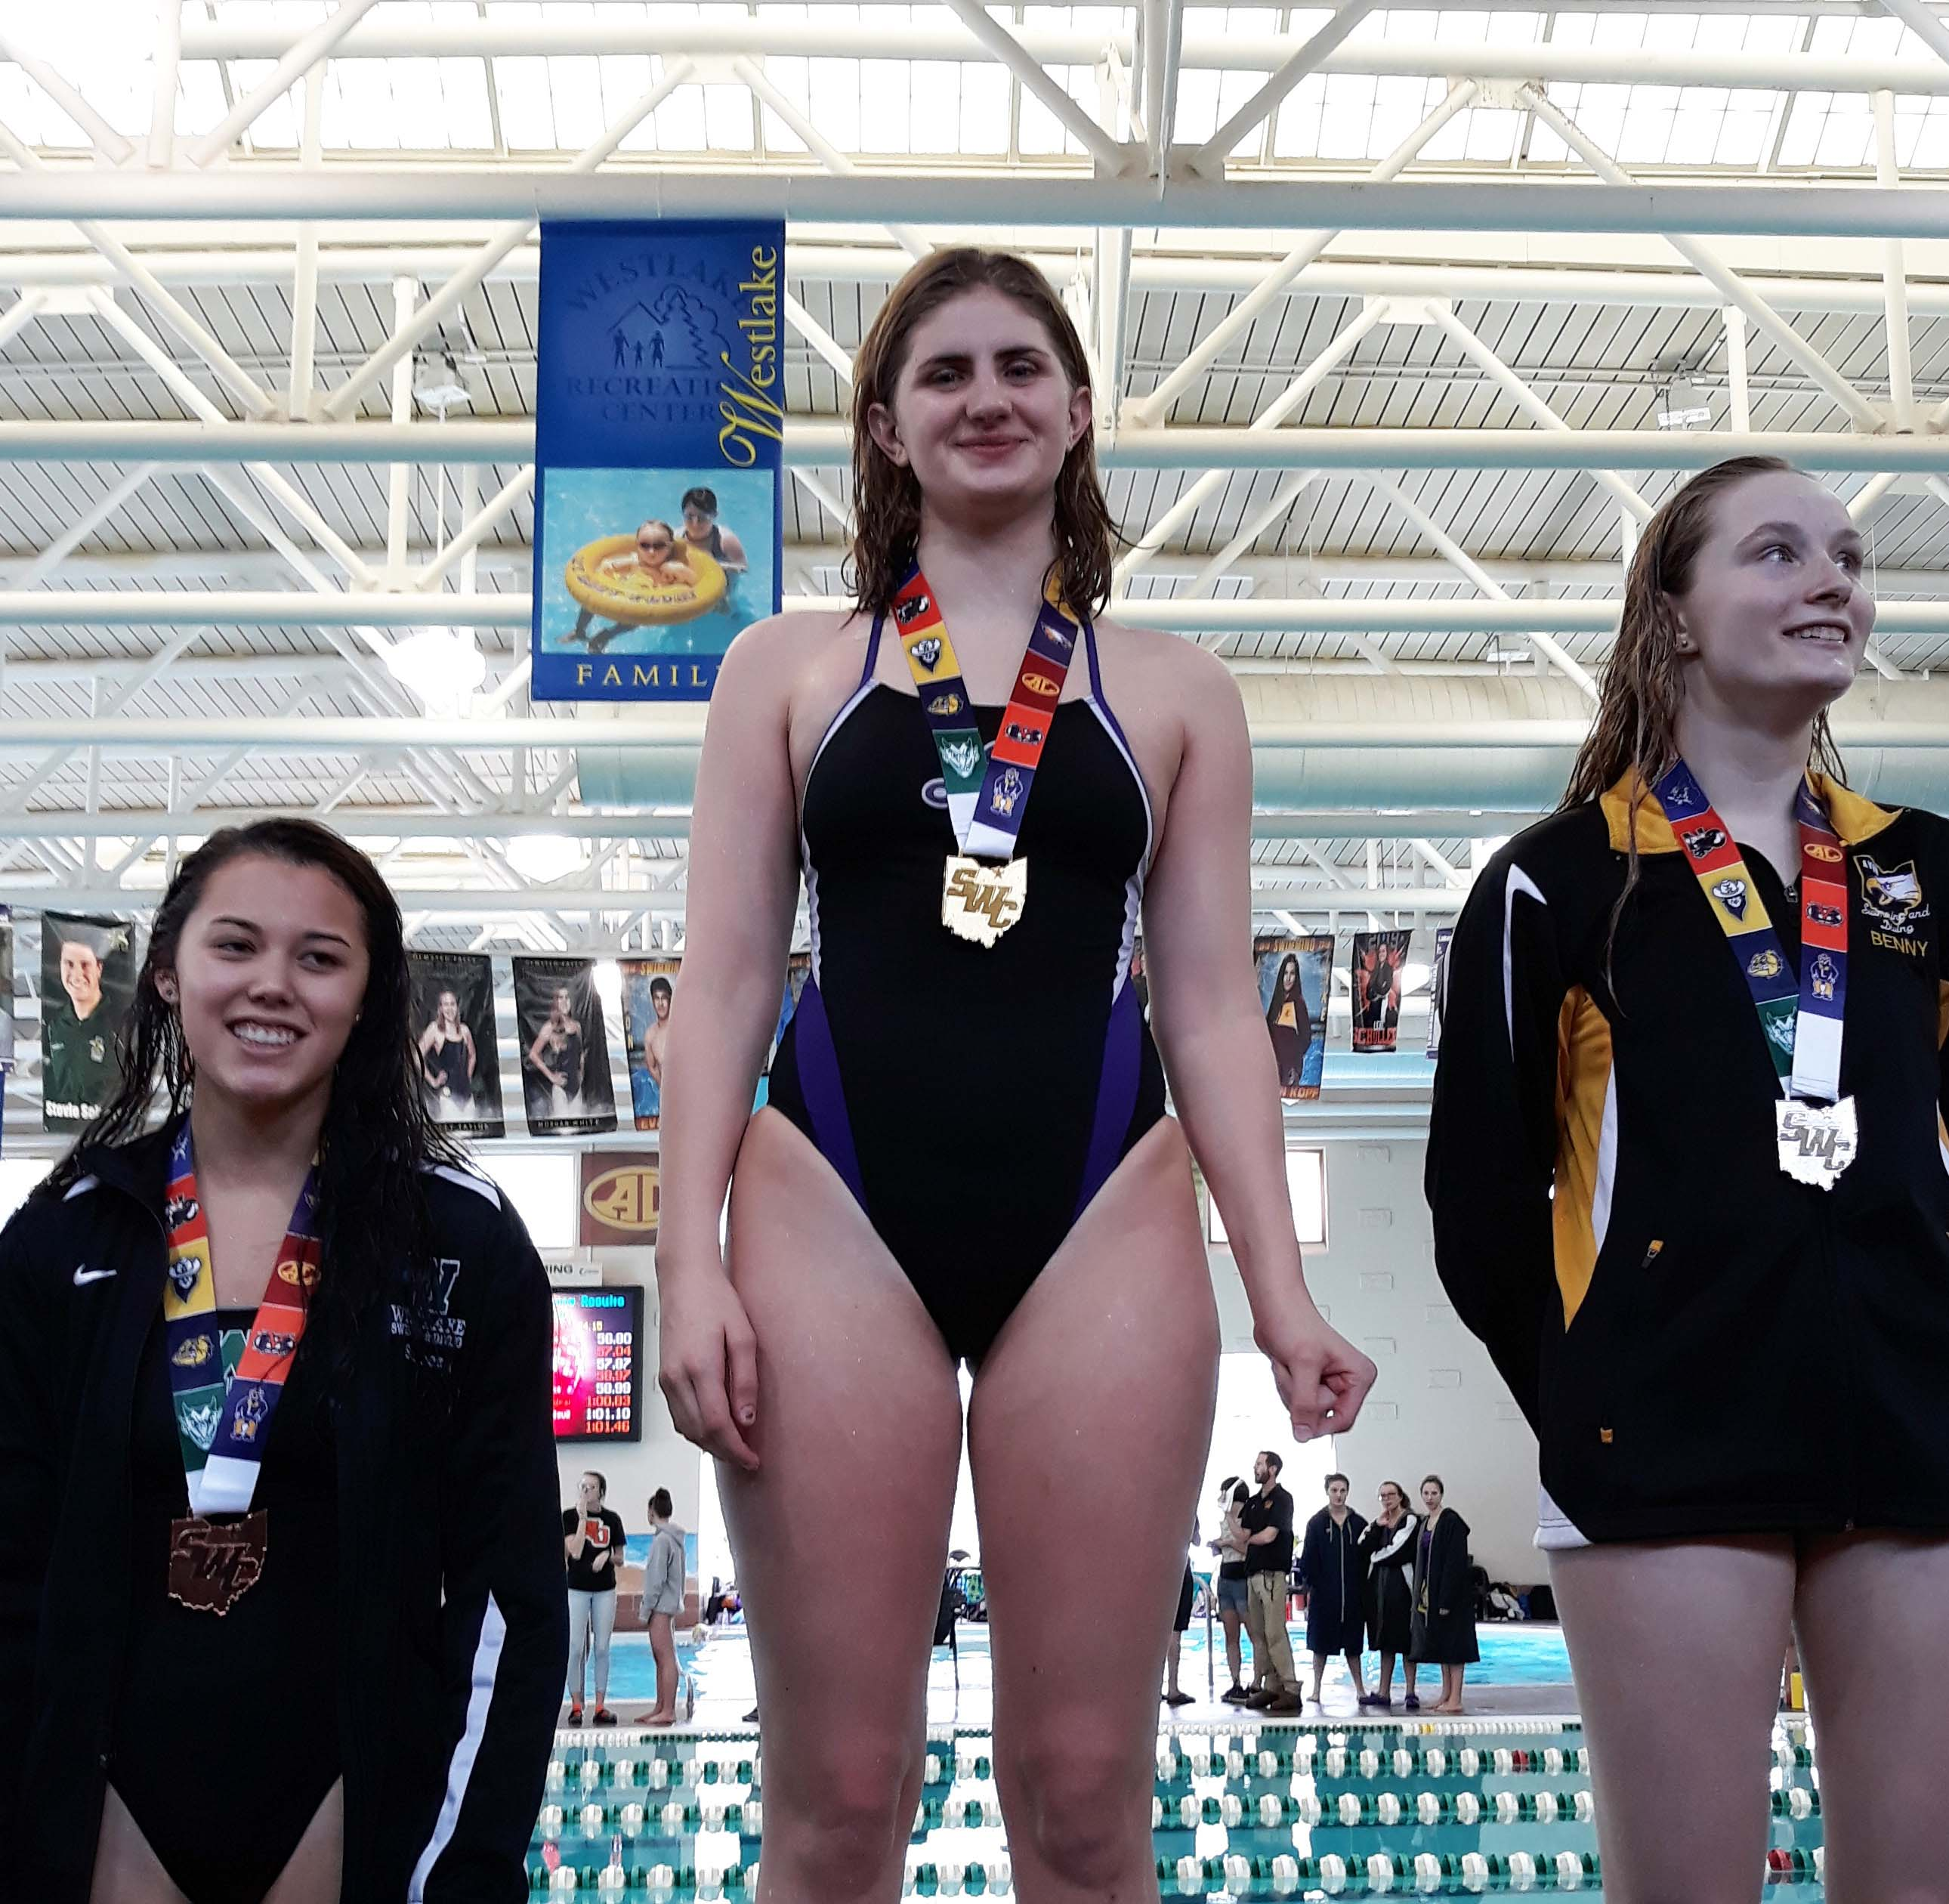 Sistina Simcox on podium